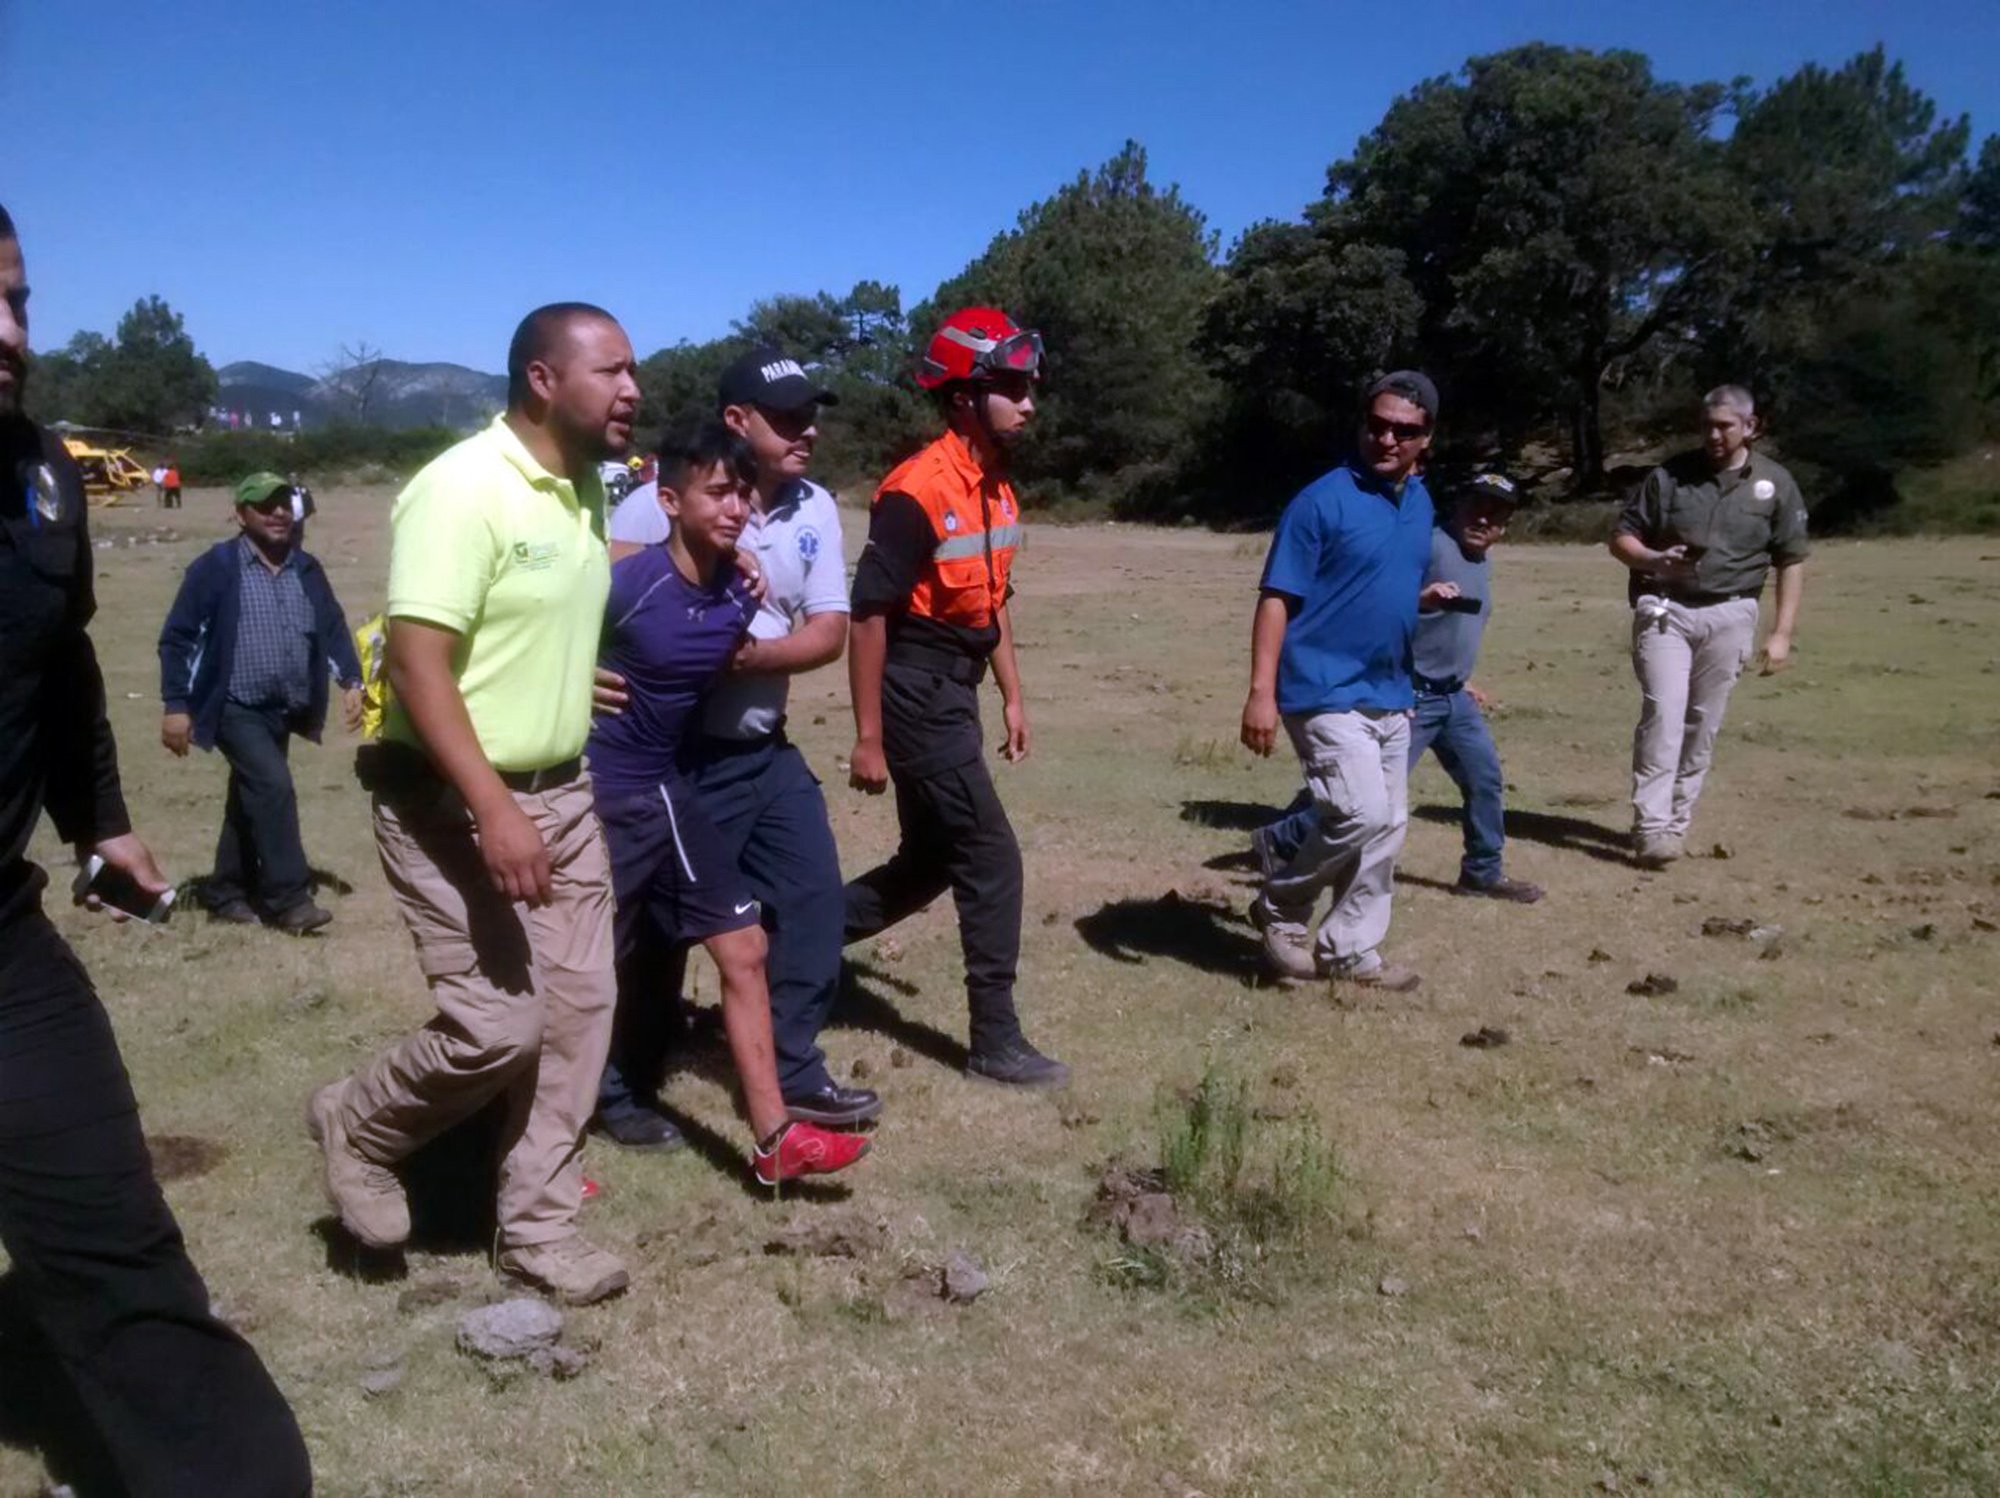 """CEN-Pic shows: Juan Heriberto Trevino leaving the helicopter. A teenage boy scout who got lost during a hike in a perilous mountain range was accompanied during the two days he was lost by a dog who kept him warm at night and then helped him back to civilisation. The 14-year-old, Juan Heriberto Trevino, had been attending a summer camp with his friends in the highlands of the municipality of Galeana, in the north-eastern Mexican state of Nueva Leon. He was walking and left the group searching for logs to make a tent to sleep in that night when he fell down a ravine. He said: """"I slipped down the ravine, I was rolling and held on to a tree to stop my fall. I got down to a river bed, which had no water and walked straight along it looking for the valley."""" He was saved when a Labrador turned up alongside him and never left his side the whole time he was lost. And he explained how realising he had no idea where he was, he had ended up following the dog. Juan said: """"He stayed by my side the whole time, making me feel safe. """"I did not walk at night because I knew I could get more lost, so I put twigs over my legs and hugged the dog to keep warm. """"We came up to a pool of water and I saw that the dog drank from it, and I was so thirsty I drank too. I prayed all the time to God that they would find me."""" For 40 hours the search for Juan continued. And finally in the early hours of the morning two villagers who had joined the search on their horses found him. They describe how he ran up to them with his faithful friend in tow and gave them a hug saying he thought he would never be found. The youth was taken away in the helicopter with the dog to be treated for minor injuries. The dog, later revealed to be called Max, was found to be from a local ranch. Juan wanted to adopt his saviour, although it appears that for the moment he is staying with his current owners. The boy meanwhile is now safe and sound and back with his family. (ends)"""